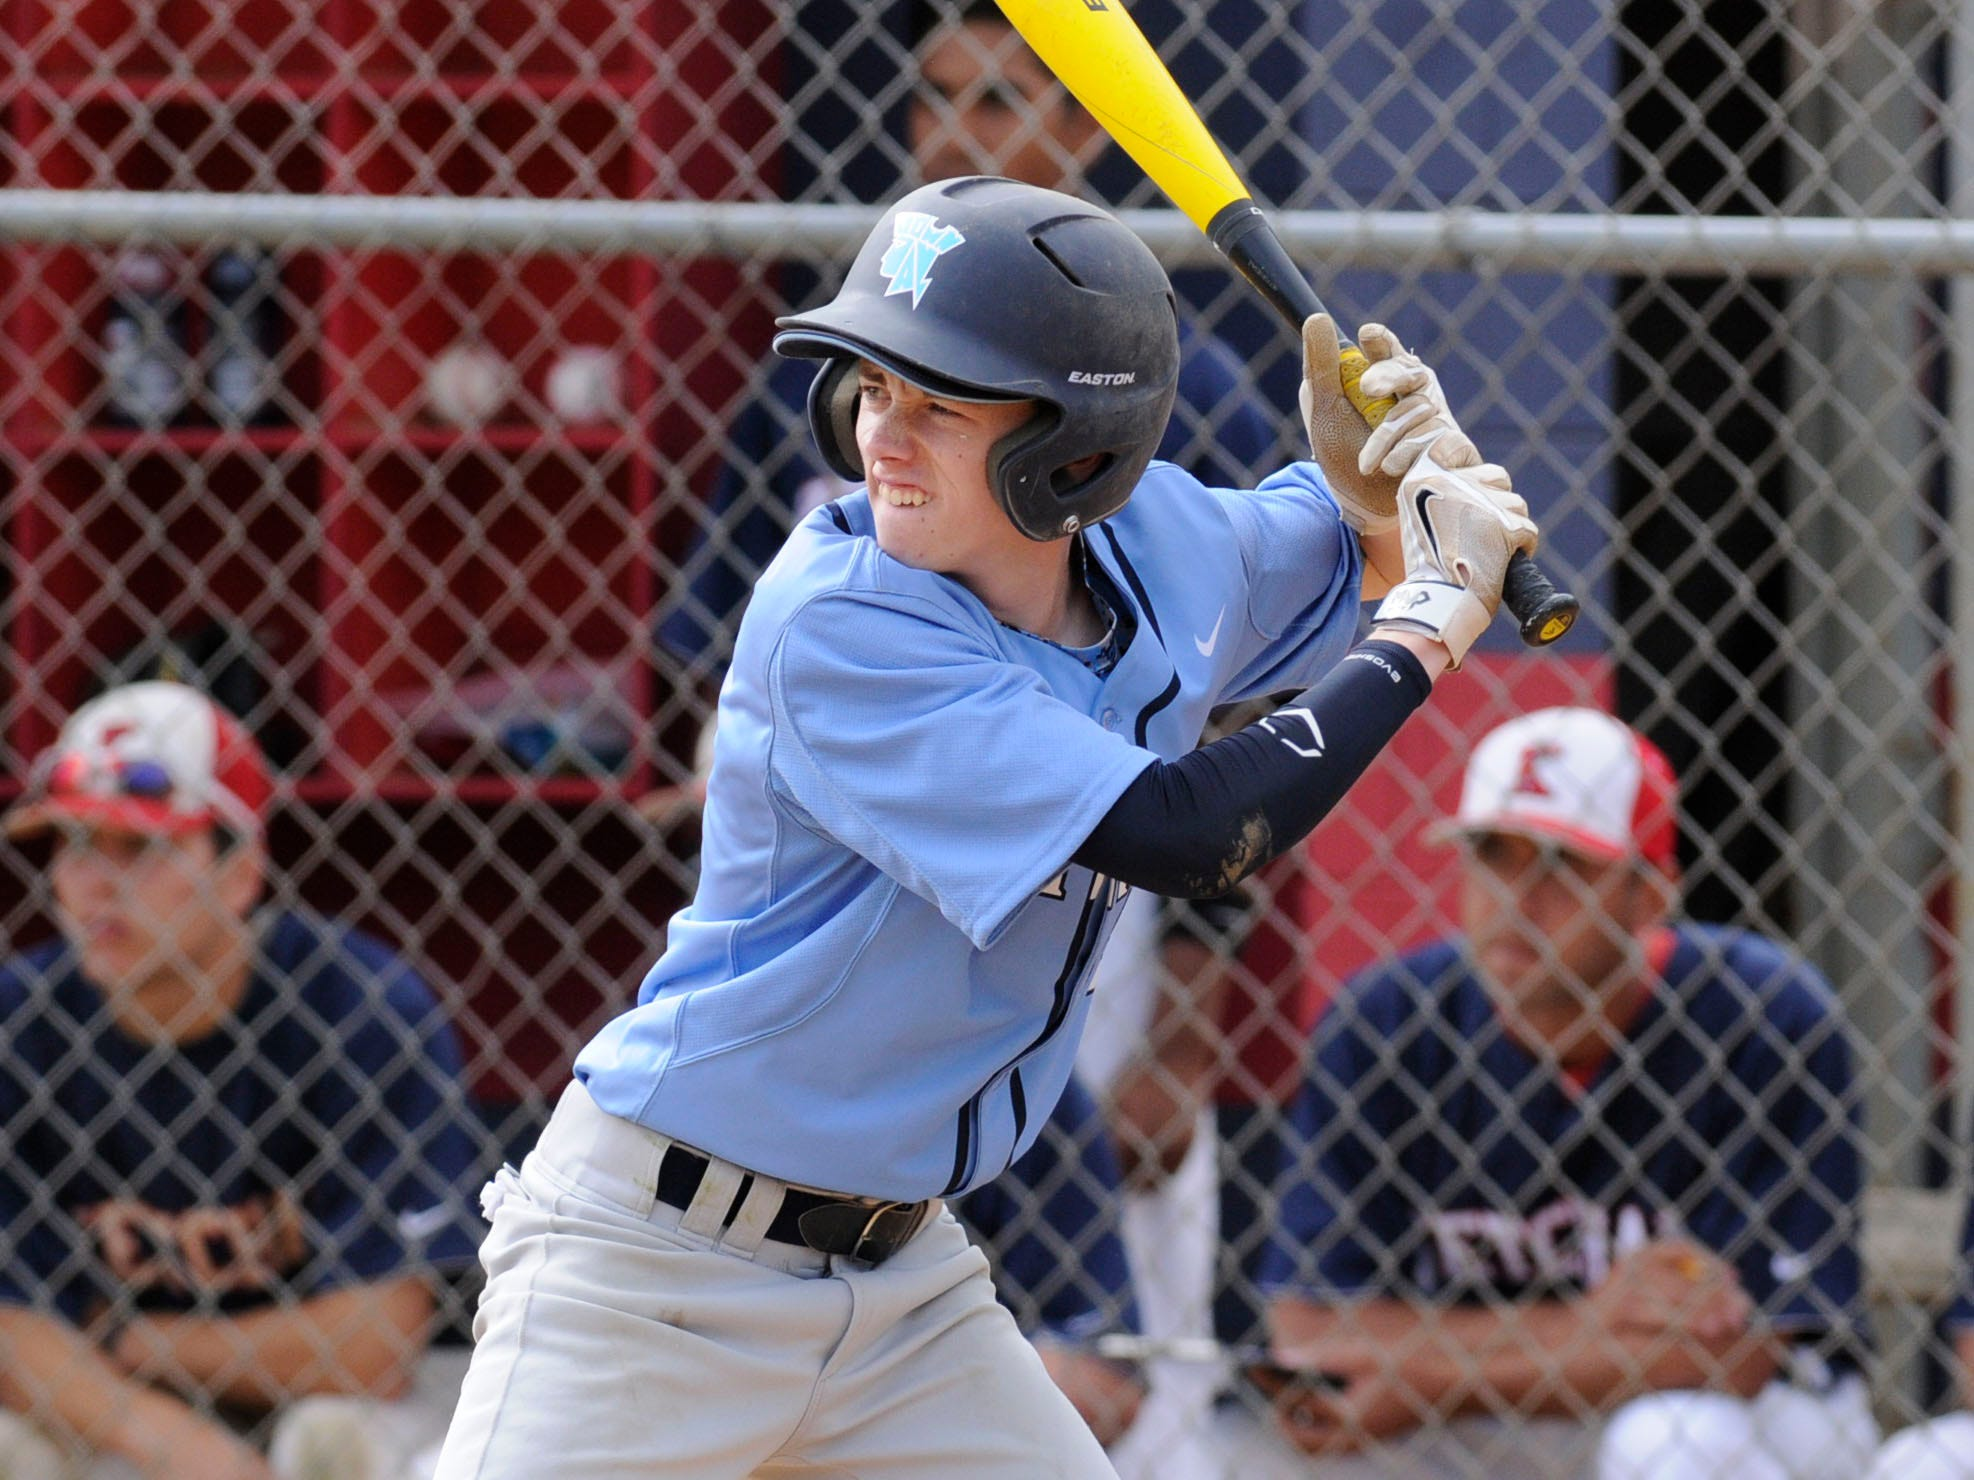 John Jay High School's Mike Attebery waits for the pitch in Thursday's game against Roy C. Ketcham High School.